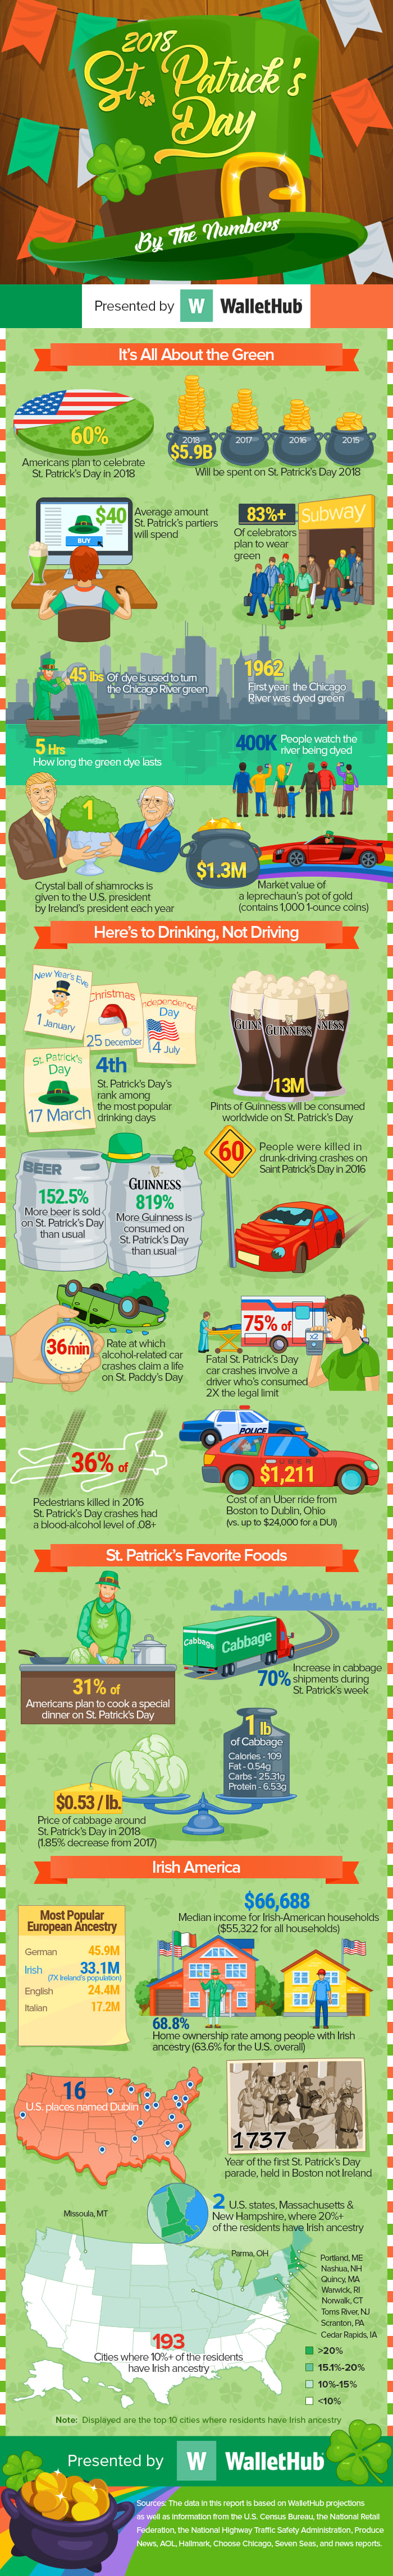 St-Patrick's-Day-By-The-Numbers-v4